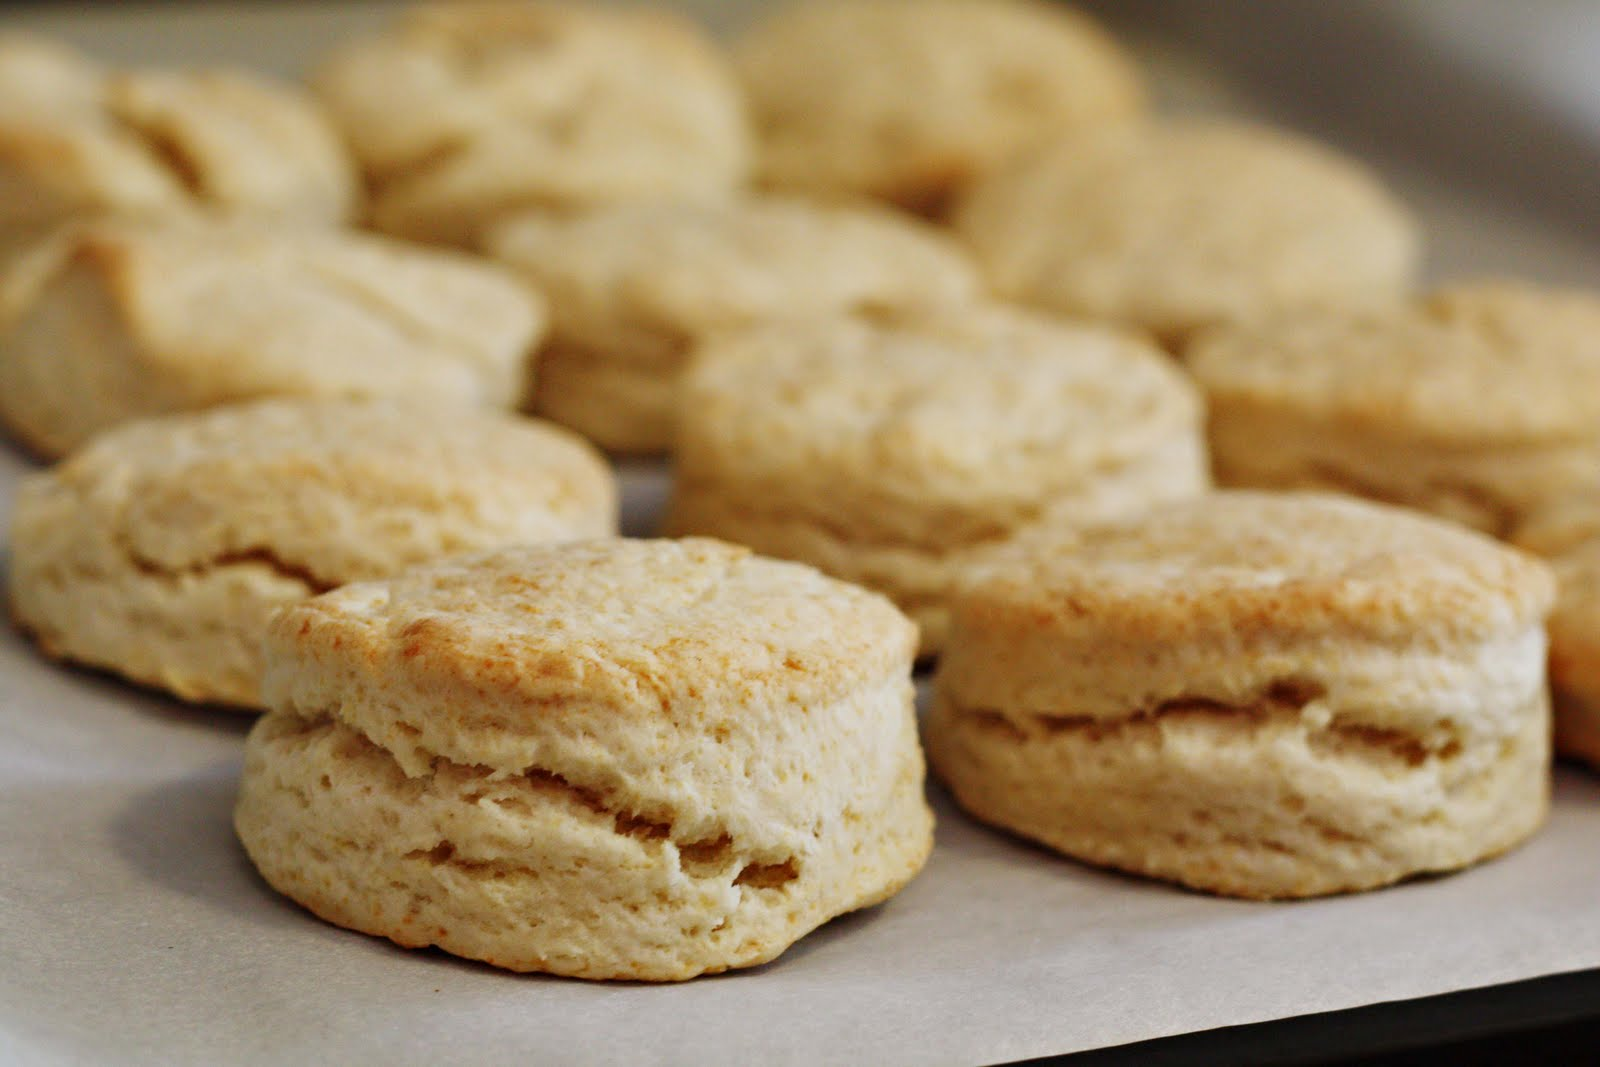 lily sweet white lily sweet cake biscuits southern biscuits biscuits ...